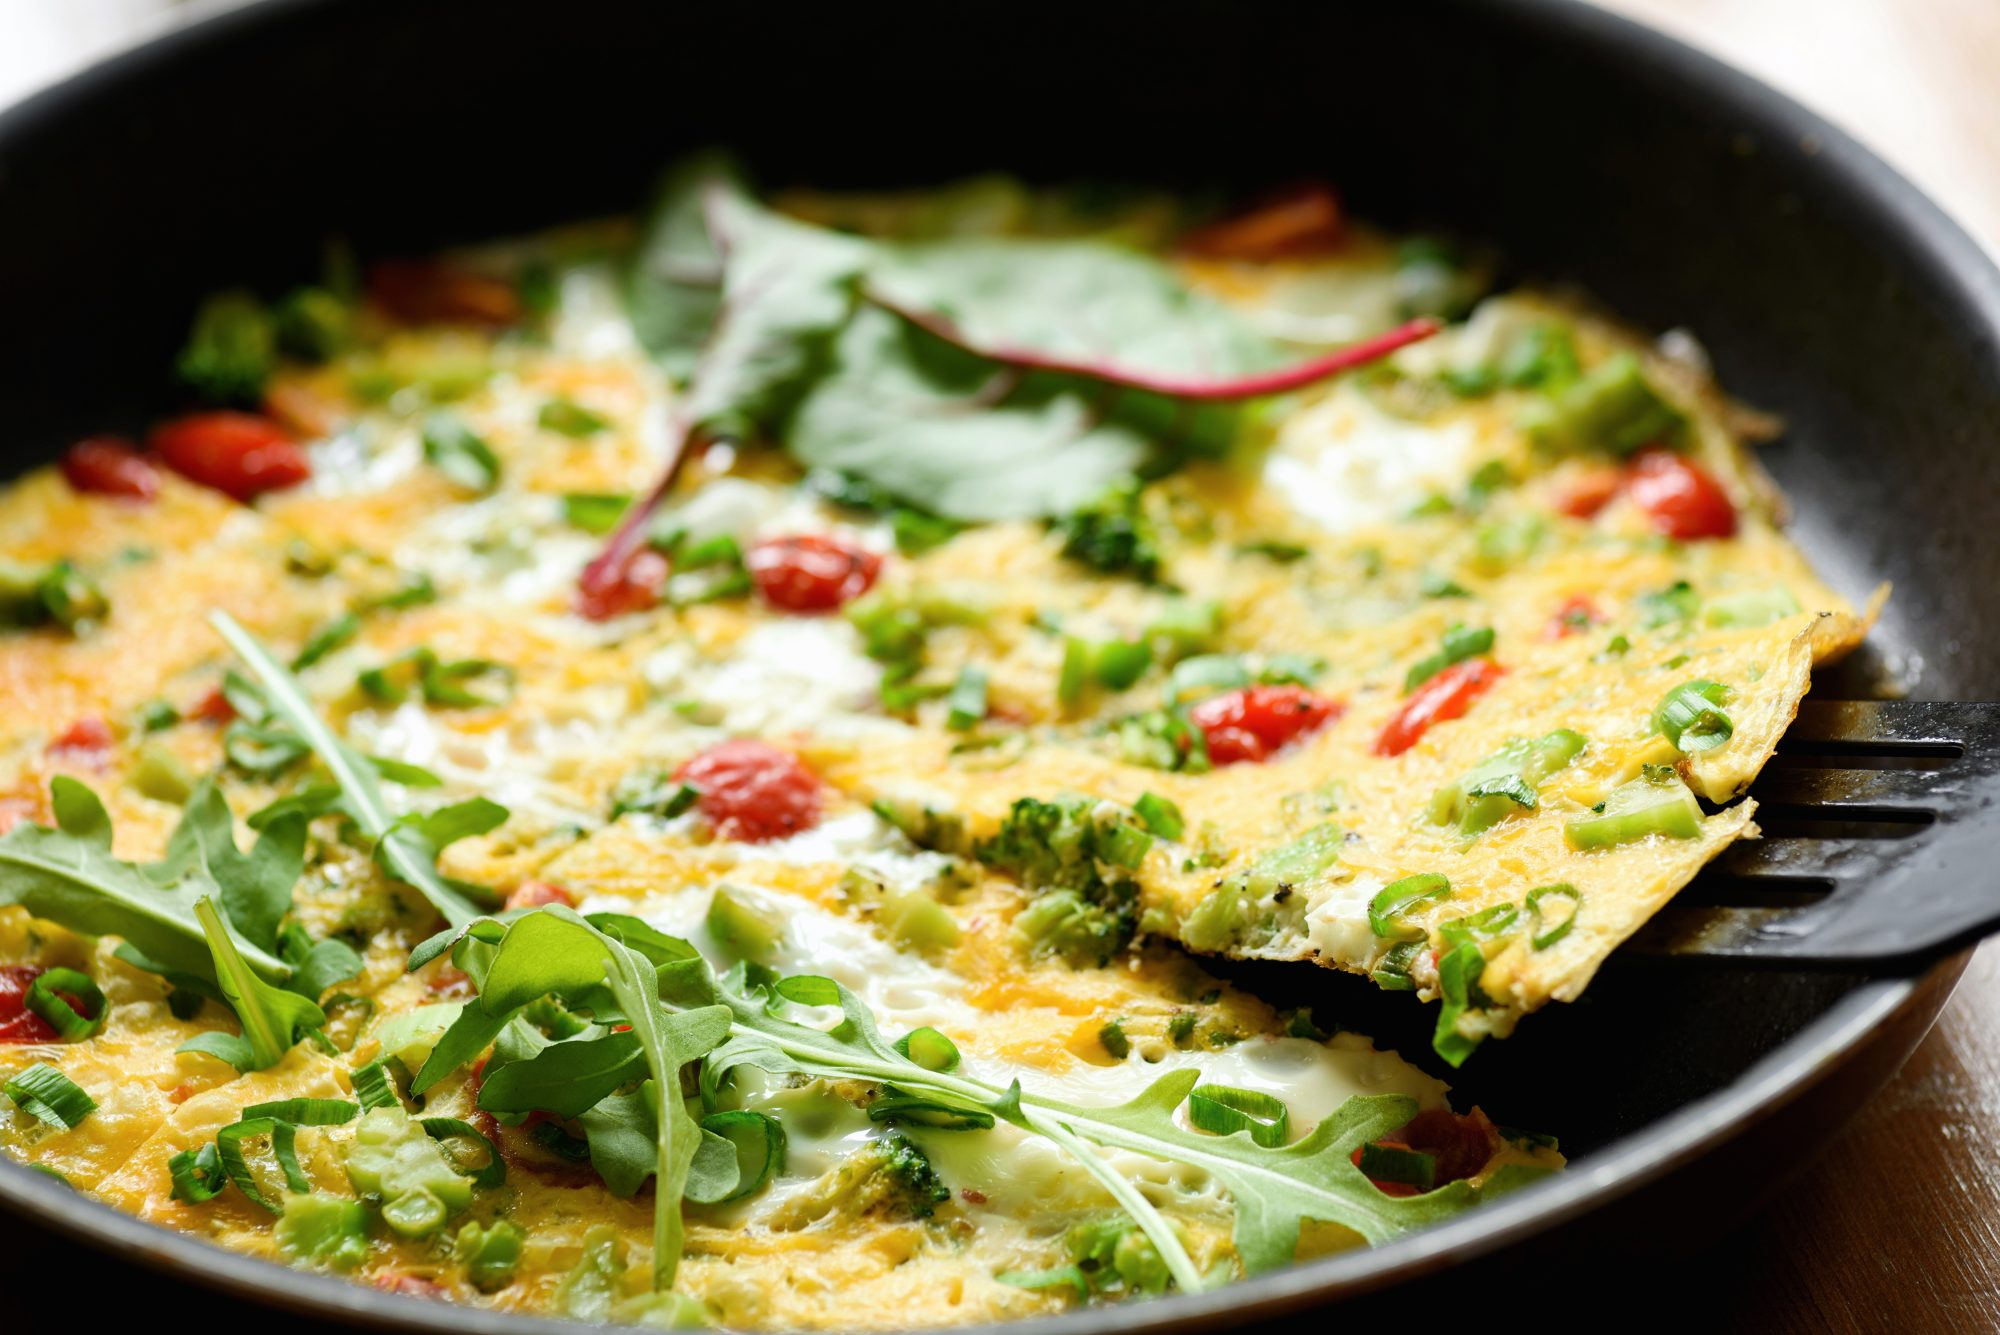 5 Inexpensive Ways to Make Scrambled Eggs More Exciting